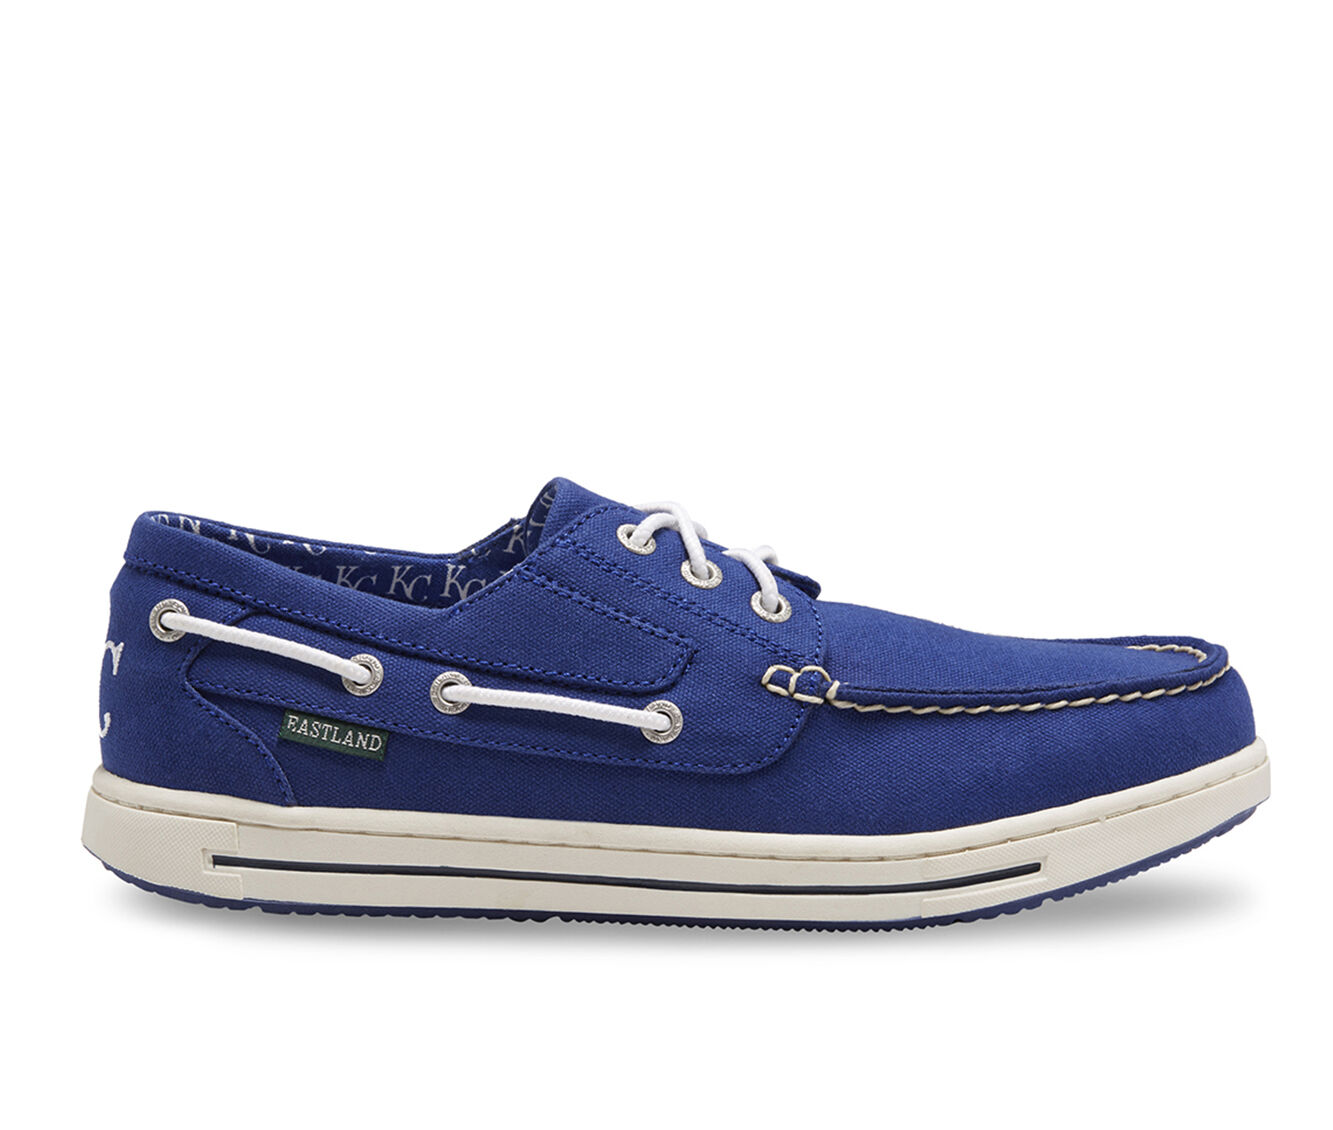 Outlet UK Men's Eastland Adventure MLB Royals Boat Shoes Blue